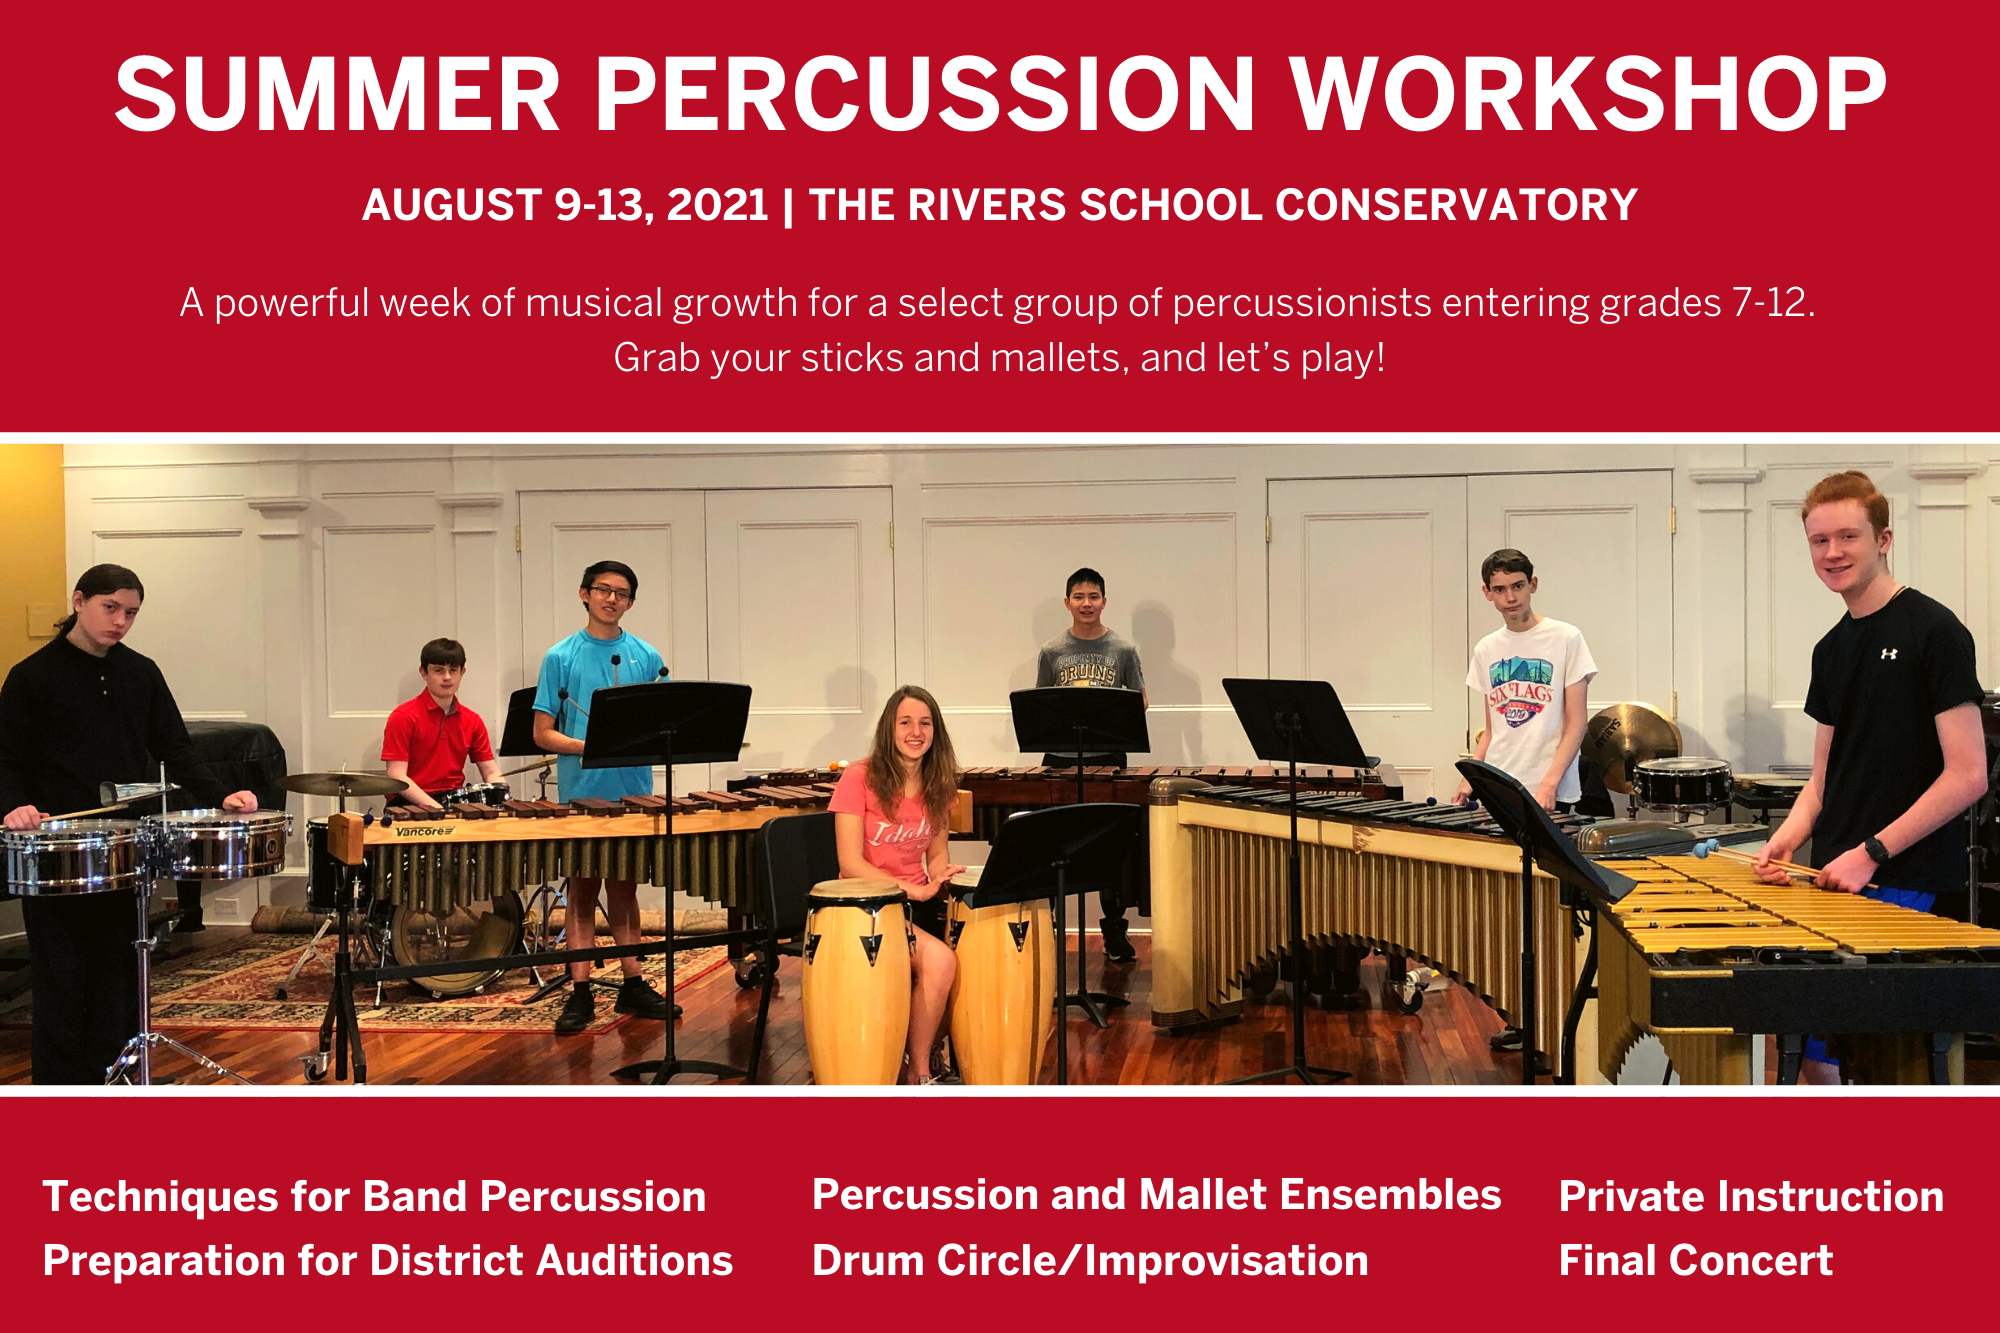 2020 Summer Percussion Postcard